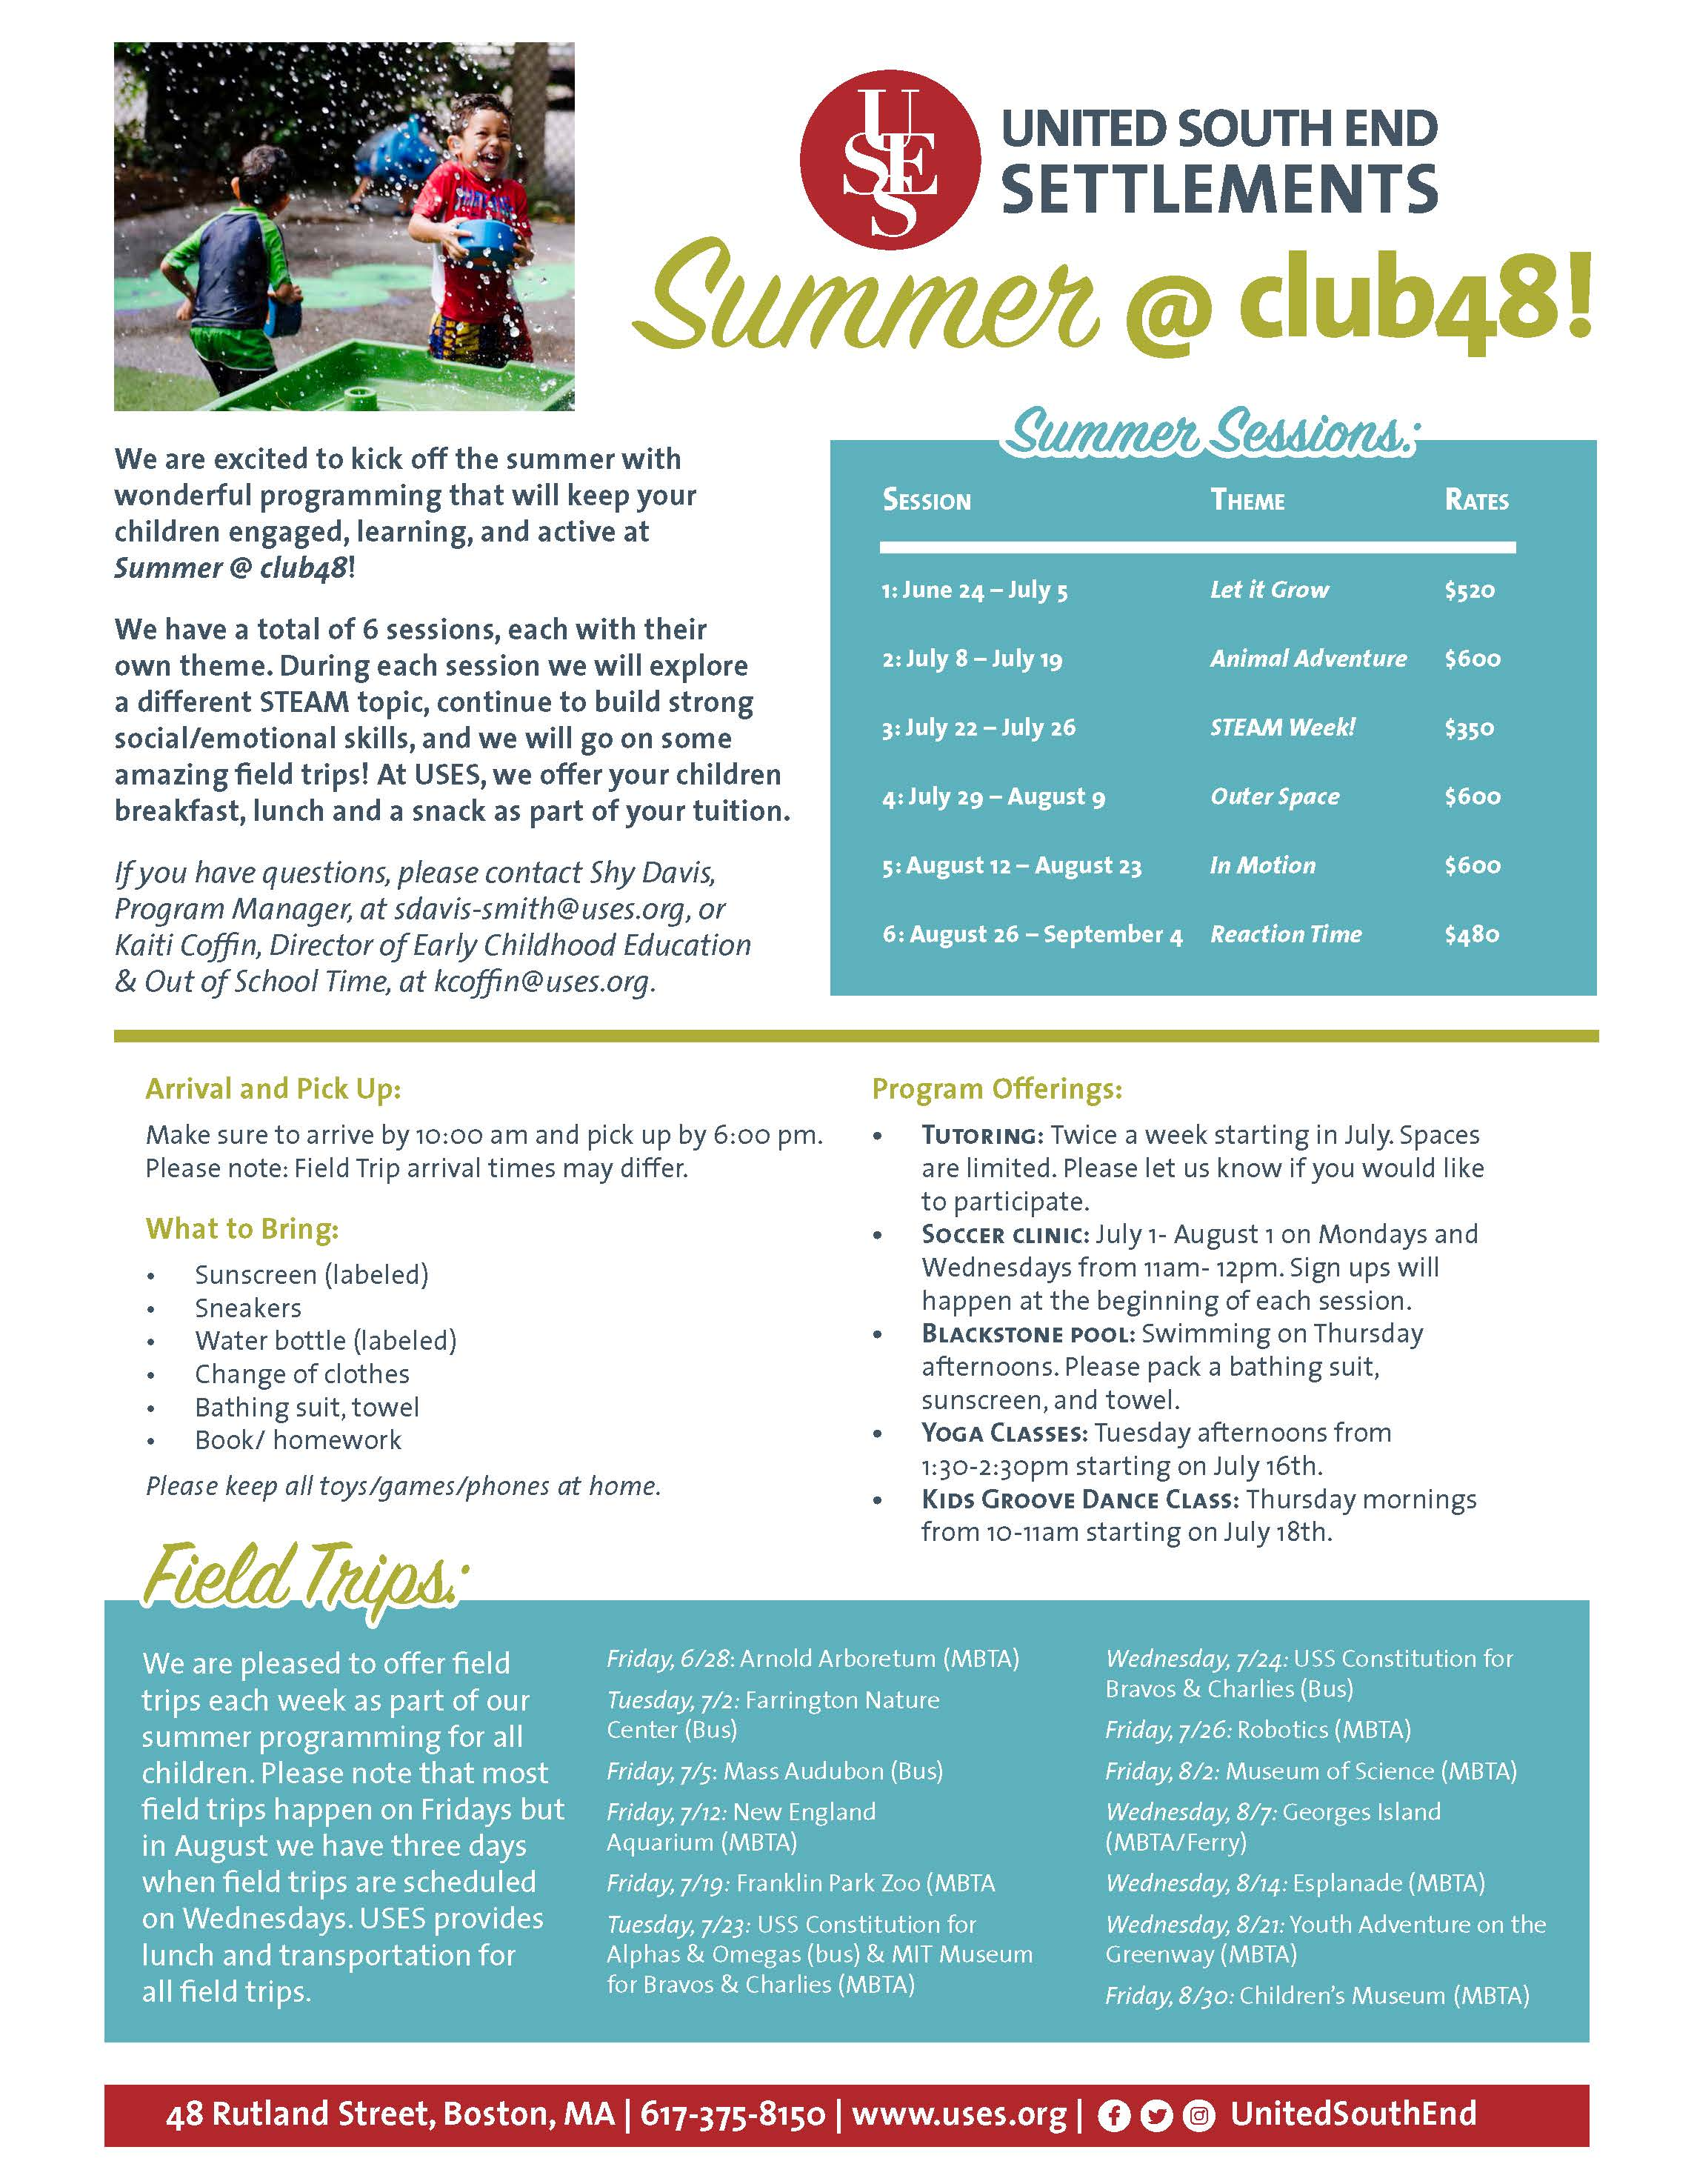 We are excited to kick off the summer with wonderful programming that will keep your children engaged, learning, and active at Summer @ club48! We have a total of 6 sessions, each with their own theme. During each session we will explore a different STEAM topic, continue to build strong social/emotional skills, and we will go on some amazing field trips! At USES, we offer your children breakfast, lunch and a snack as part of your tuition. If you have questions, please contact Shy Davis, Program Manager, at sdavis-smith@uses.org, or Kaiti Coffin, Director of Early Childhood Education & Out of School Time, at kcoffin@uses.org.Summer Sessions: Sess ion Theme Rates 1: June 24 – July 5 Let it Grow $520 2: July 8 – July 19 Animal Adventure $600 3: July 22 – July 26 STEAM Week! $350 4: July 29 – August 9 Outer Space $600 5: August 12 – August 23 In Motion $600 6: August 26 – September 4 Reaction Time $480 Arrival and Pick Up: Make sure to arrive by 10:00 am and pick up by 6:00 pm. Please note: Field Trip arrival times may differ. What to Bring: • Sunscreen (labeled) • Sneakers • Water bottle (labeled) • Change of clothes • Bathing suit, towel • Book/ homework Please keep all toys/games/phones at home. Program Offerings: • Tutoring: Twice a week starting in July. Spaces are limited. Please let us know if you would like to participate. • Soccer clinic: July 1- August 1 on Mondays and Wednesdays from 11am- 12pm. Sign ups will happen at the beginning of each session. • Blackstone pool: Swimming on Thursday afternoons. Please pack a bathing suit, sunscreen, and towel. • Yoga Classes: Tuesday afternoons from 1:30-2:30pm starting on July 16th. • Kids Groove Dance Class: Thursday mornings from 10-11am starting on July 18th.Field Trips: We are pleased to offer field trips each week as part of our summer programming for all children. Please note that most field trips happen on Fridays but in August we have three days when field trips are scheduled on Wednesdays. USES provides lunch and transportation for all field trips. Friday, 6/28: Arnold Arboretum (MBTA) Tuesday, 7/2: Farrington Nature Center (Bus) Friday, 7/5: Mass Audubon (Bus) Friday, 7/12: New England Aquarium (MBTA) Friday, 7/19: Franklin Park Zoo (MBTA Tuesday, 7/23: USS Constitution for Alphas & Omegas (bus) & MIT Museum for Bravos & Charlies (MBTA) Wednesday, 7/24: USS Constitution for Bravos & Charlies (Bus) Friday, 7/26: Robotics (MBTA) Friday, 8/2: Museum of Science (MBTA) Wednesday, 8/7: Georges Island (MBTA/Ferry) Wednesday, 8/14: Esplanade (MBTA) Wednesday, 8/21: Youth Adventure on the Greenway (MBTA) Friday, 8/30: Children's Museum (MBTA) 48 Rutland Street, Boston, MA | 617-375-8150 | www.uses.org | UnitedSouthEnd